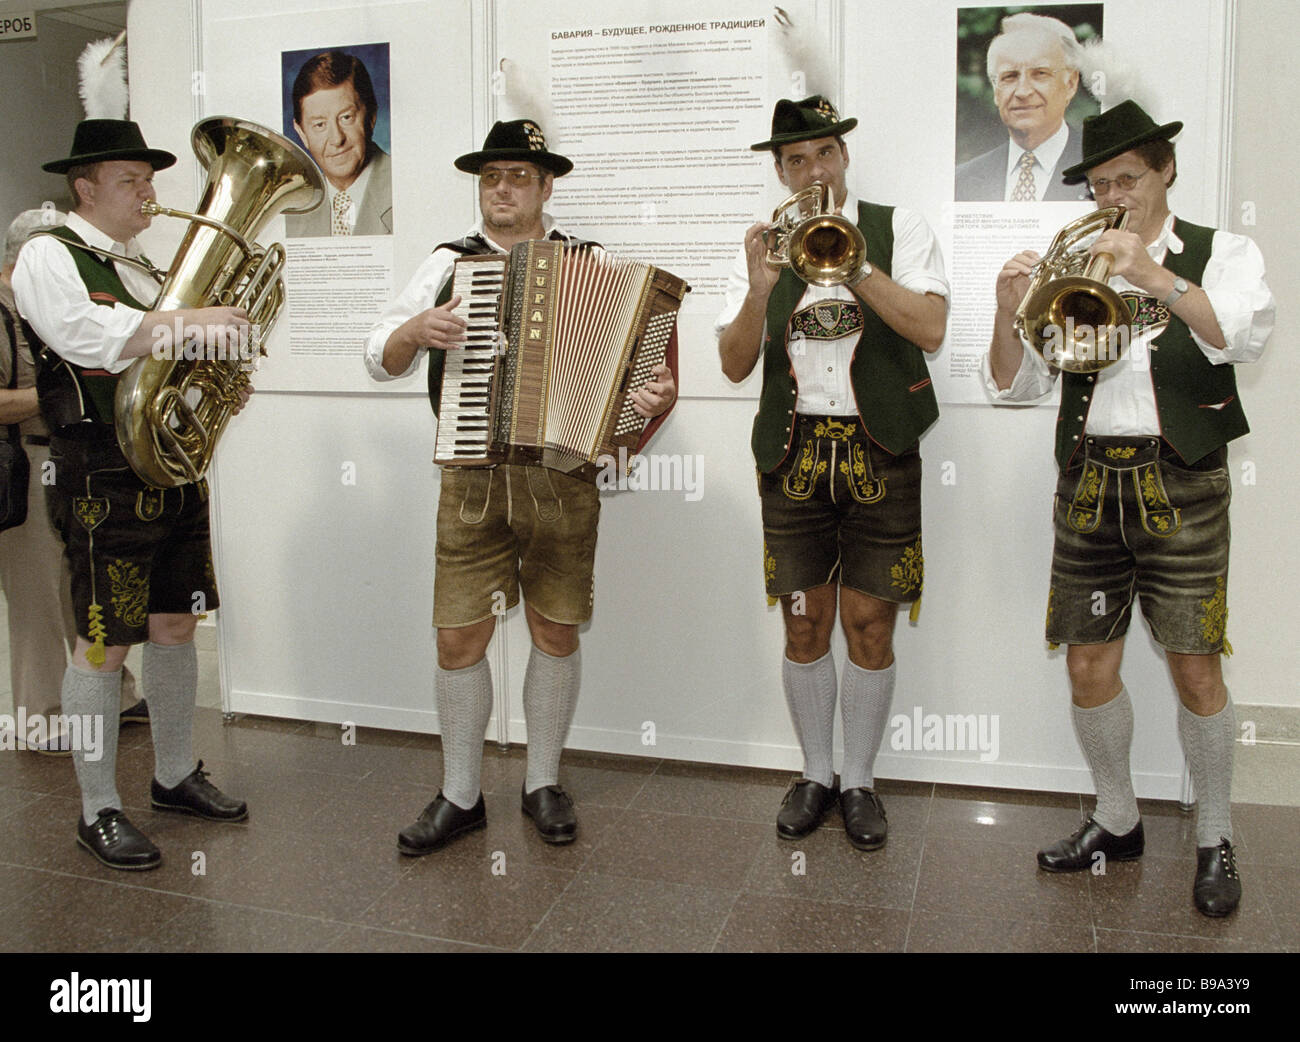 Bavarian folk music company performing at the exhibition Bavarian Traditions Will Stay - Stock Image